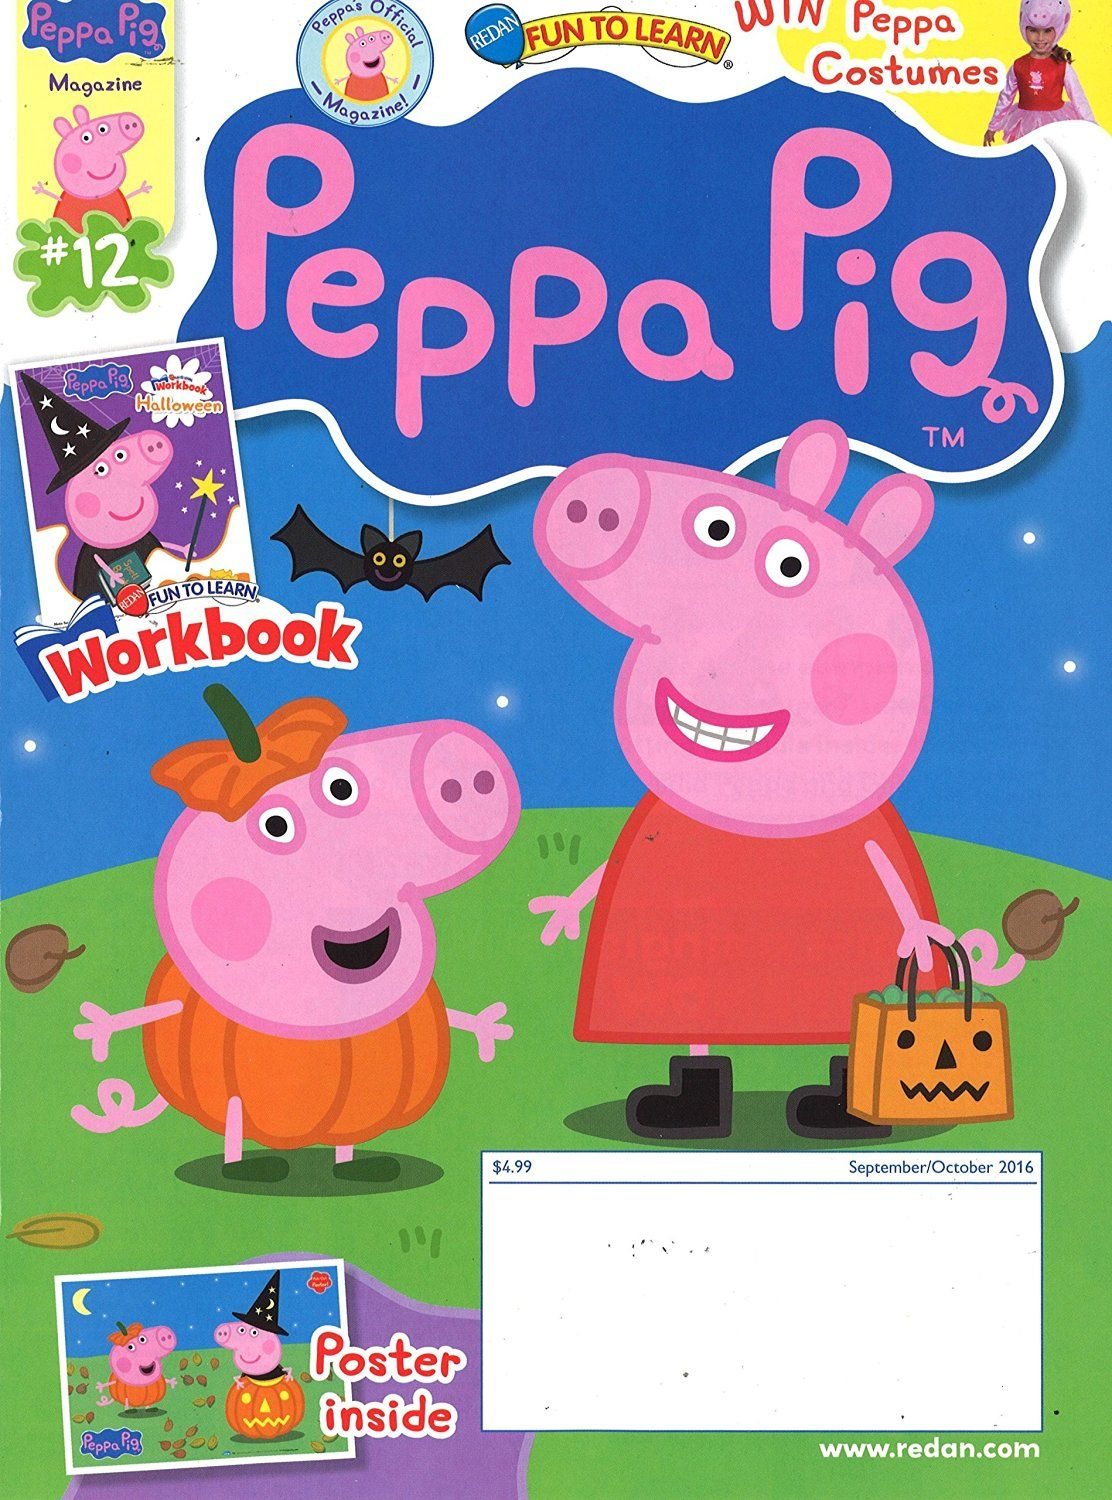 Peppa Pig Magazine | Learning skills, Magazines and Content